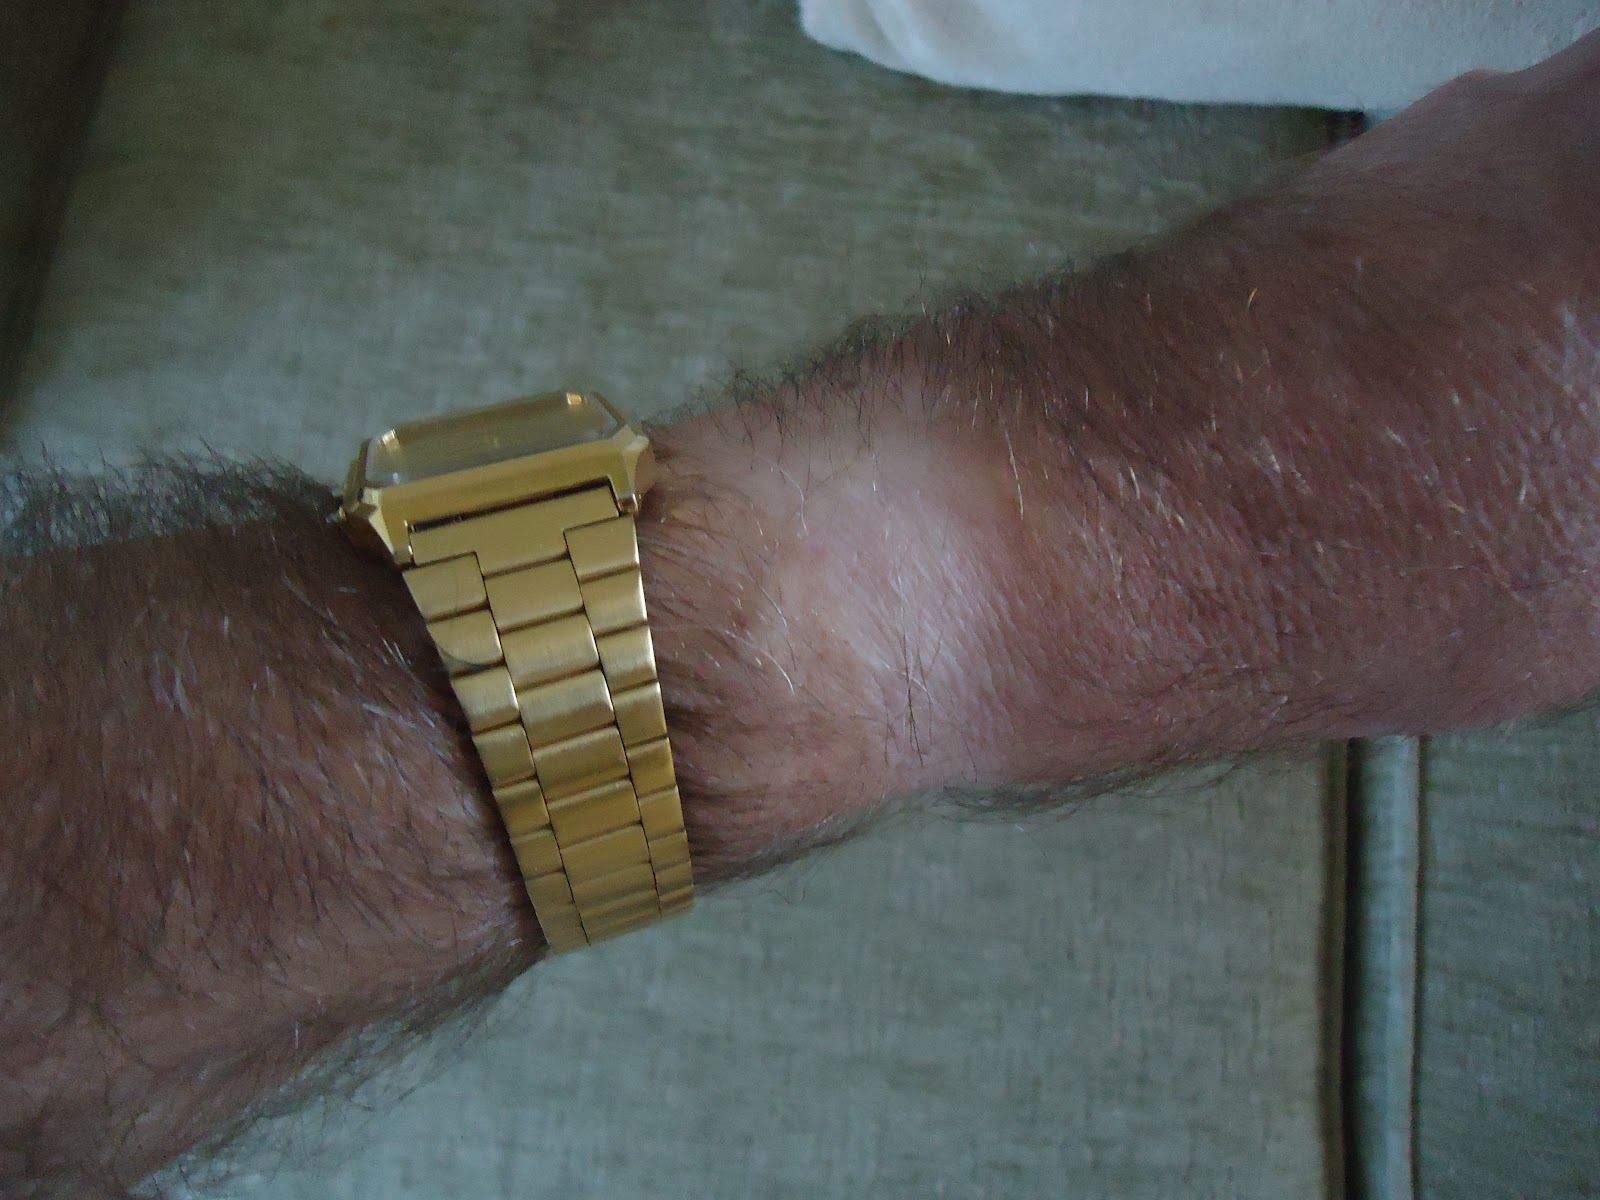 Watch marks on wrist - I Rather Hope That The Steroids I Have Been Taking The Last Few Days Might Help Build Me Up Again I Saw The Consultant On Thursday And He Prescribed Them